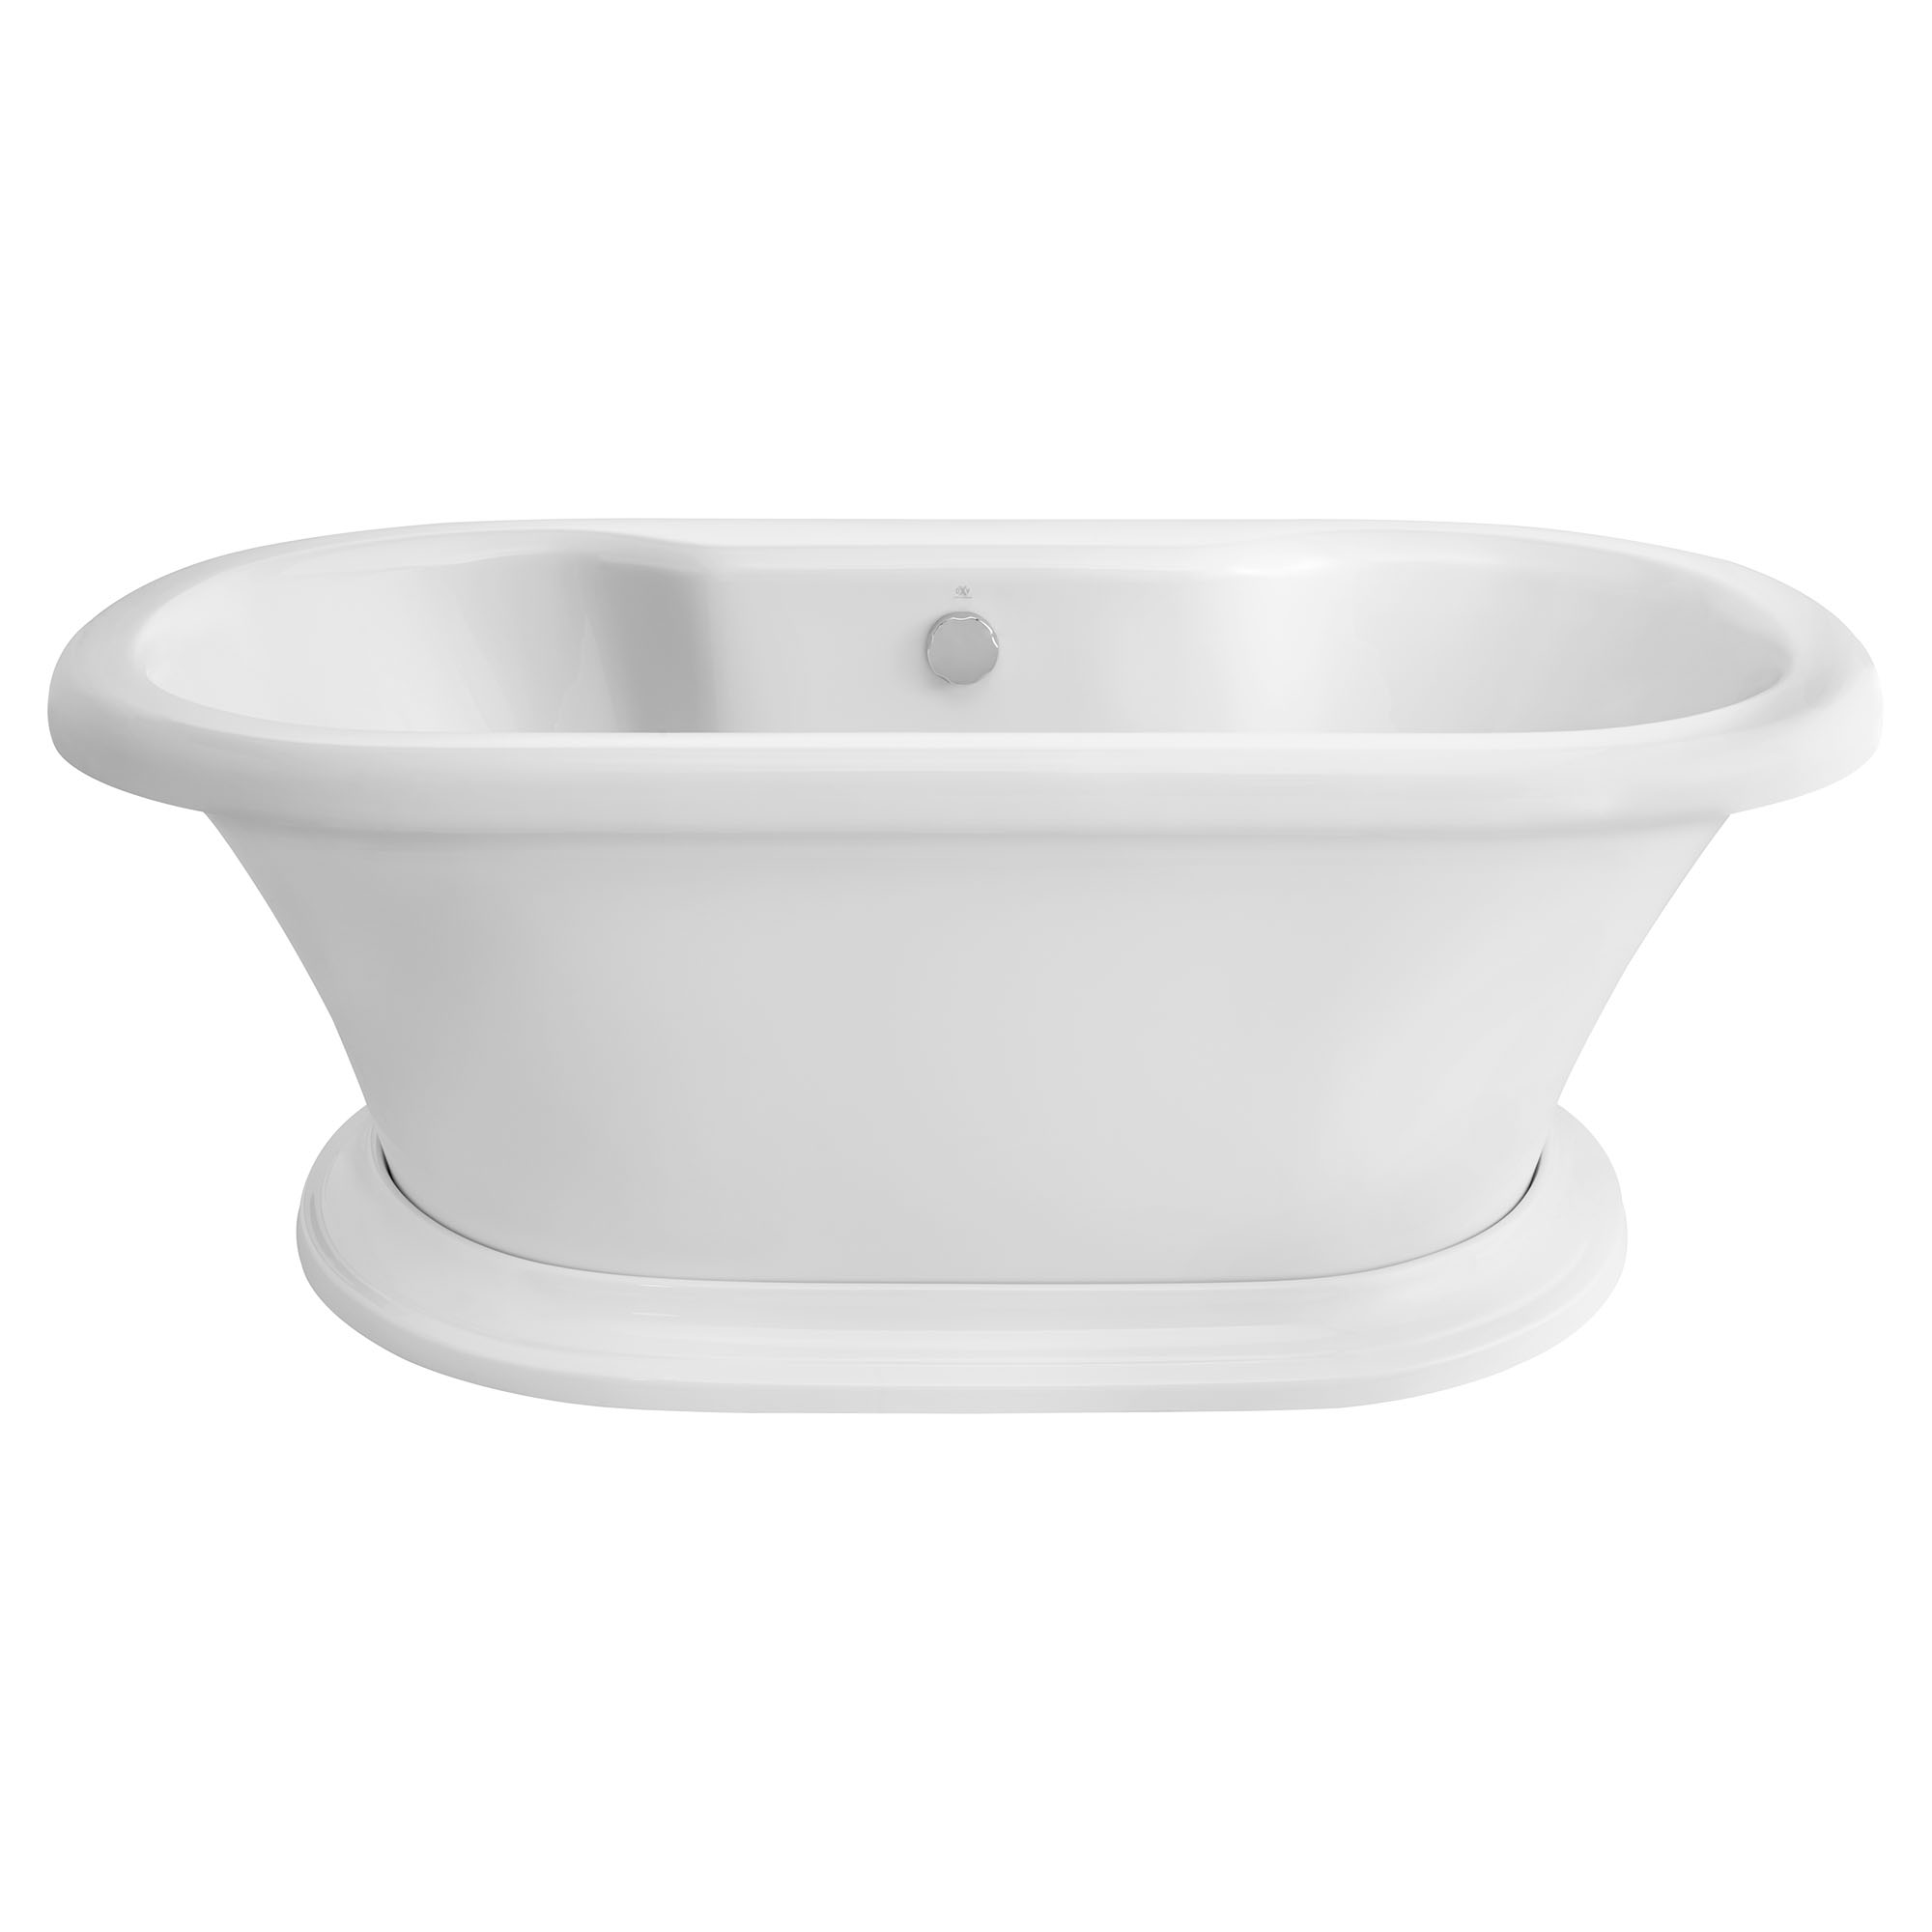 Soaking Tubs- St. George Freestanding Soaker Tub with Deck from DXV